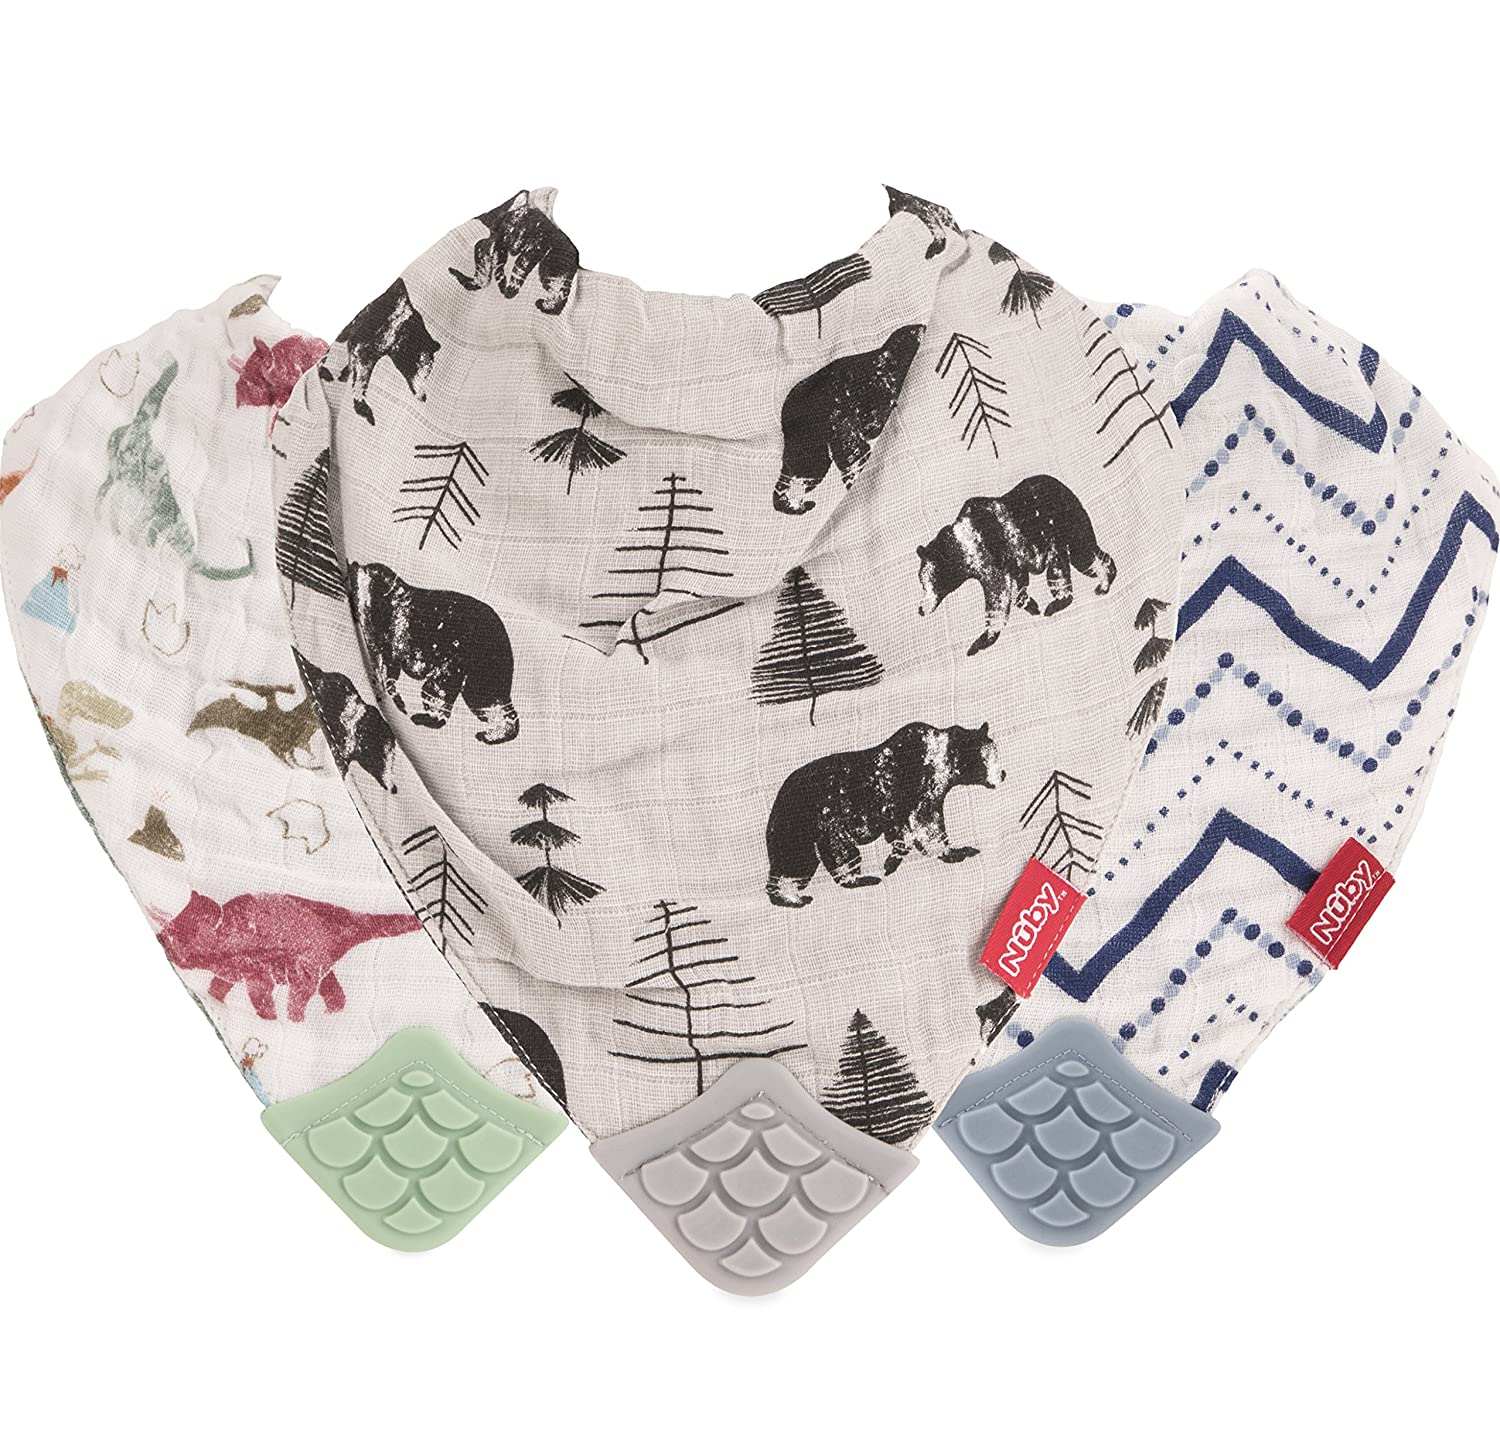 Nuby Reversible 100% Natural Cotton Muslin 3 Piece Teething Bib, Green/Grey/Blue, Dinosaur/Bear/Stripes Unique Look Inc. 93019